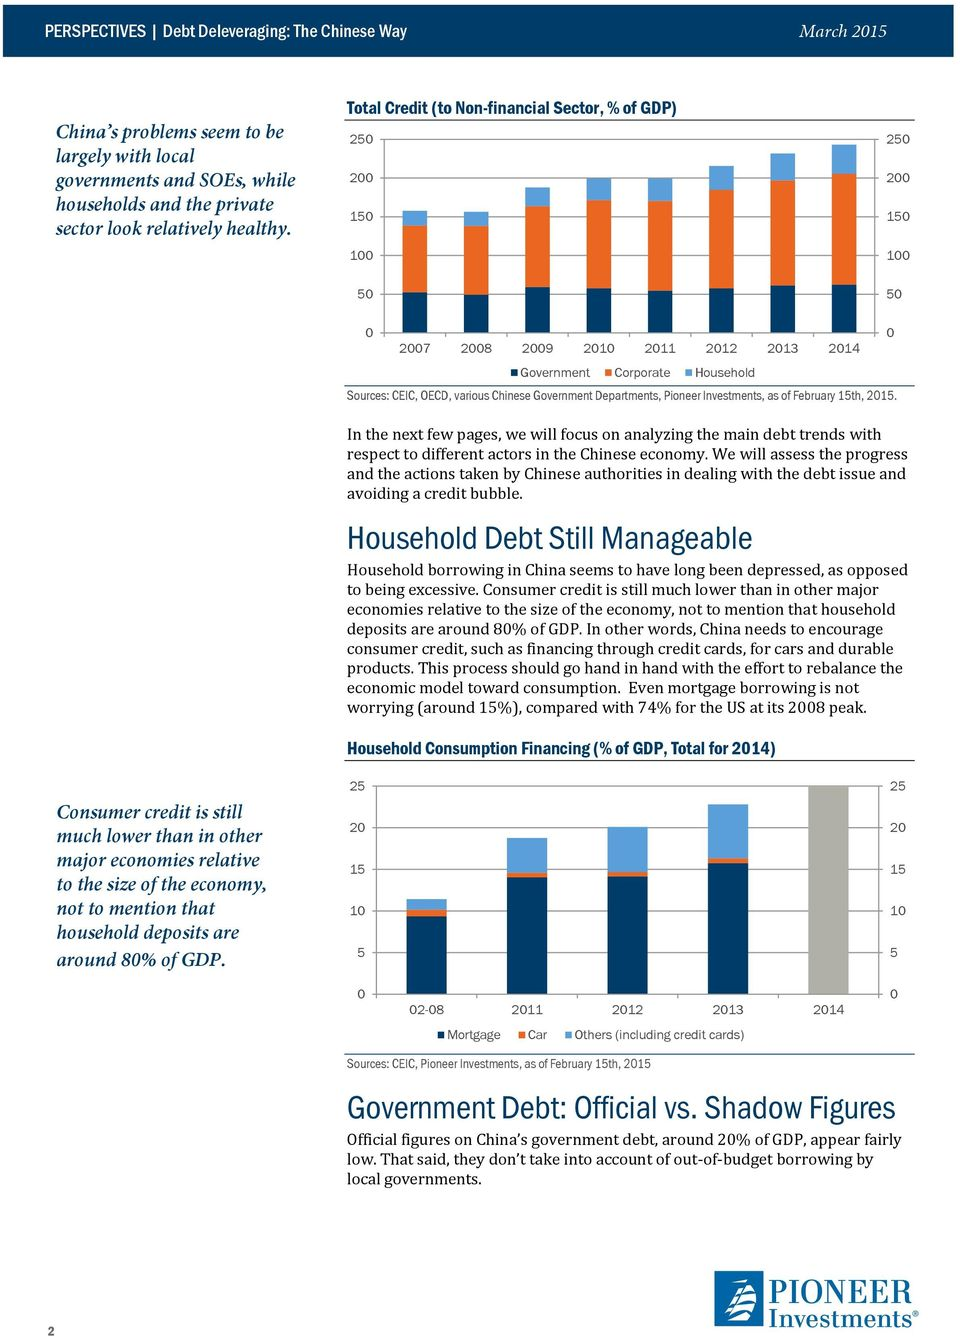 Investments, as of February th, 2. In the next few pages, we will focus on analyzing the main debt trends with respect to different actors in the Chinese economy.